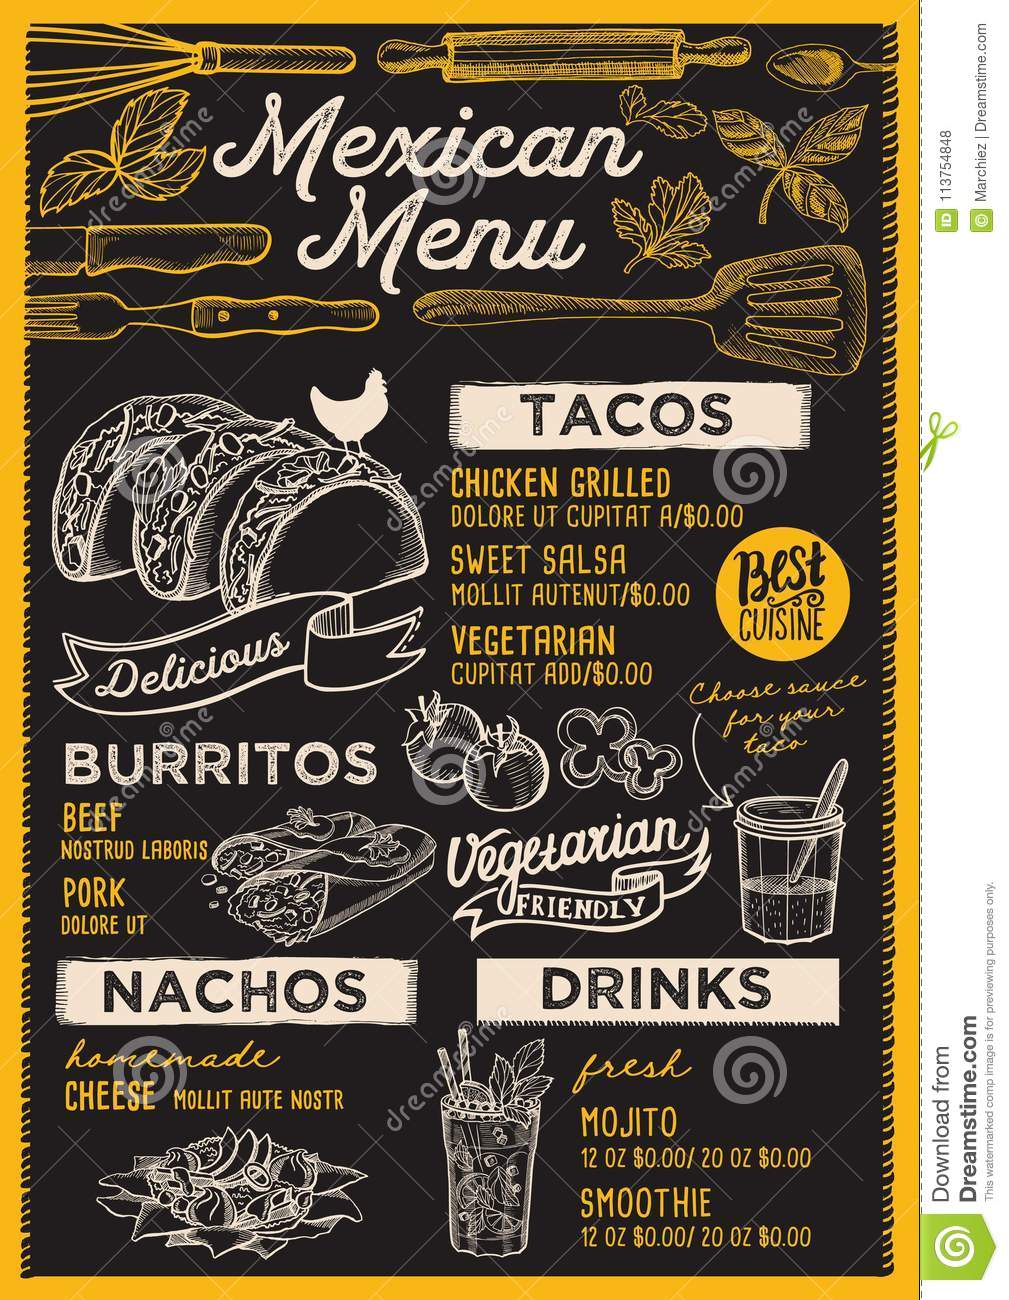 Mexican Menu Restaurant Food Template Stock Vector Illustration Of Party Chalkboard 113754848